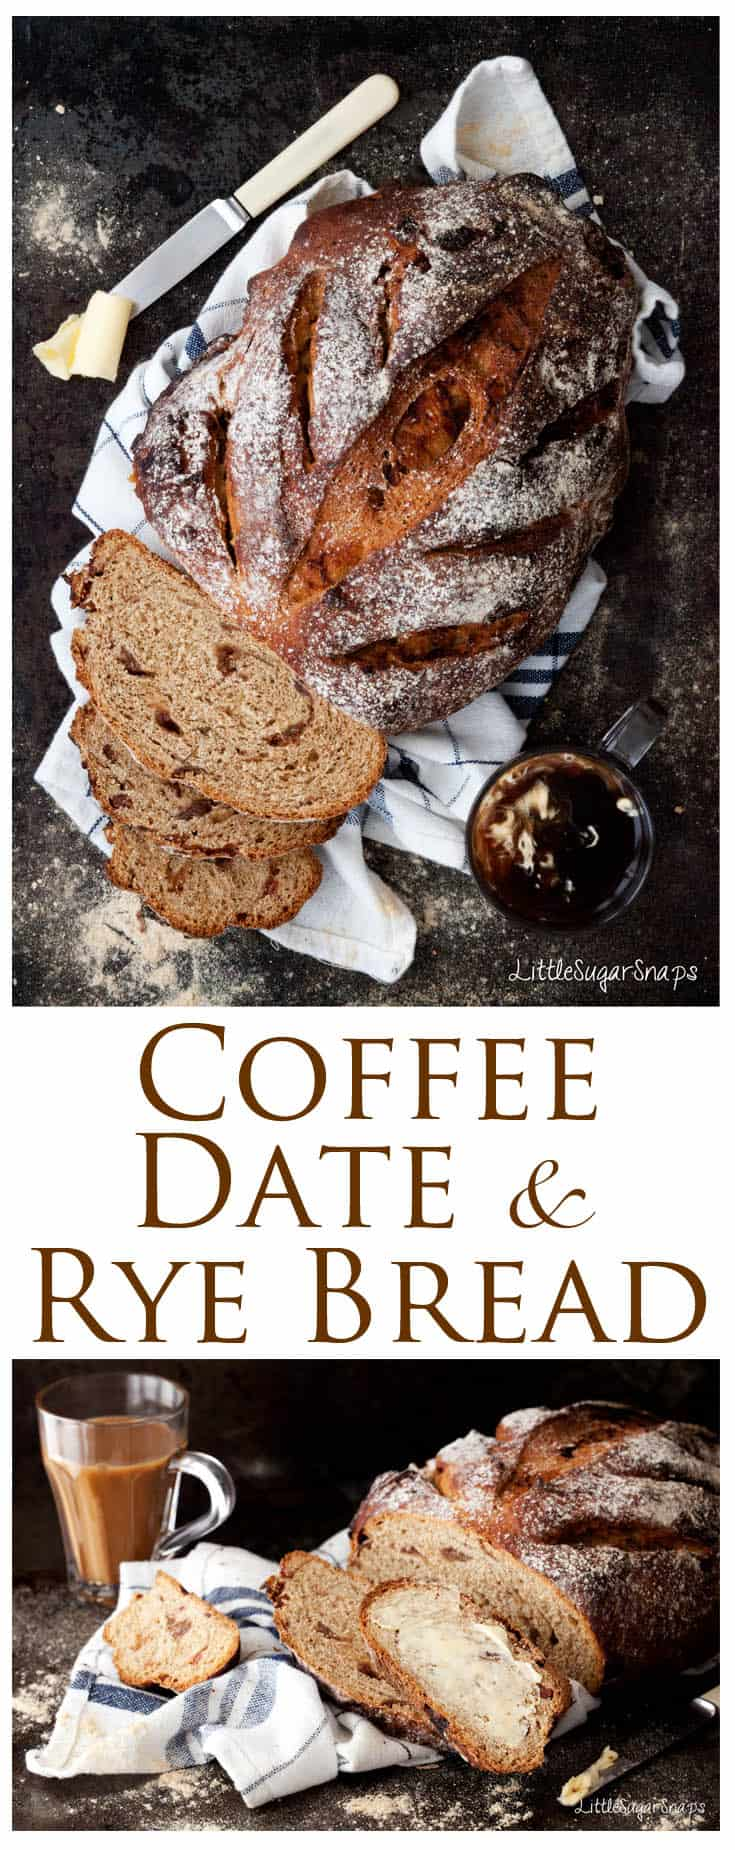 Homemade Coffee Date Rye Bread is worth taking your time over. Enjoy it fresh and thickly sliced. A dab of butter is all it needs. This combination of sweet dates, bitter coffee and sour rye makes a great simple breakfast.